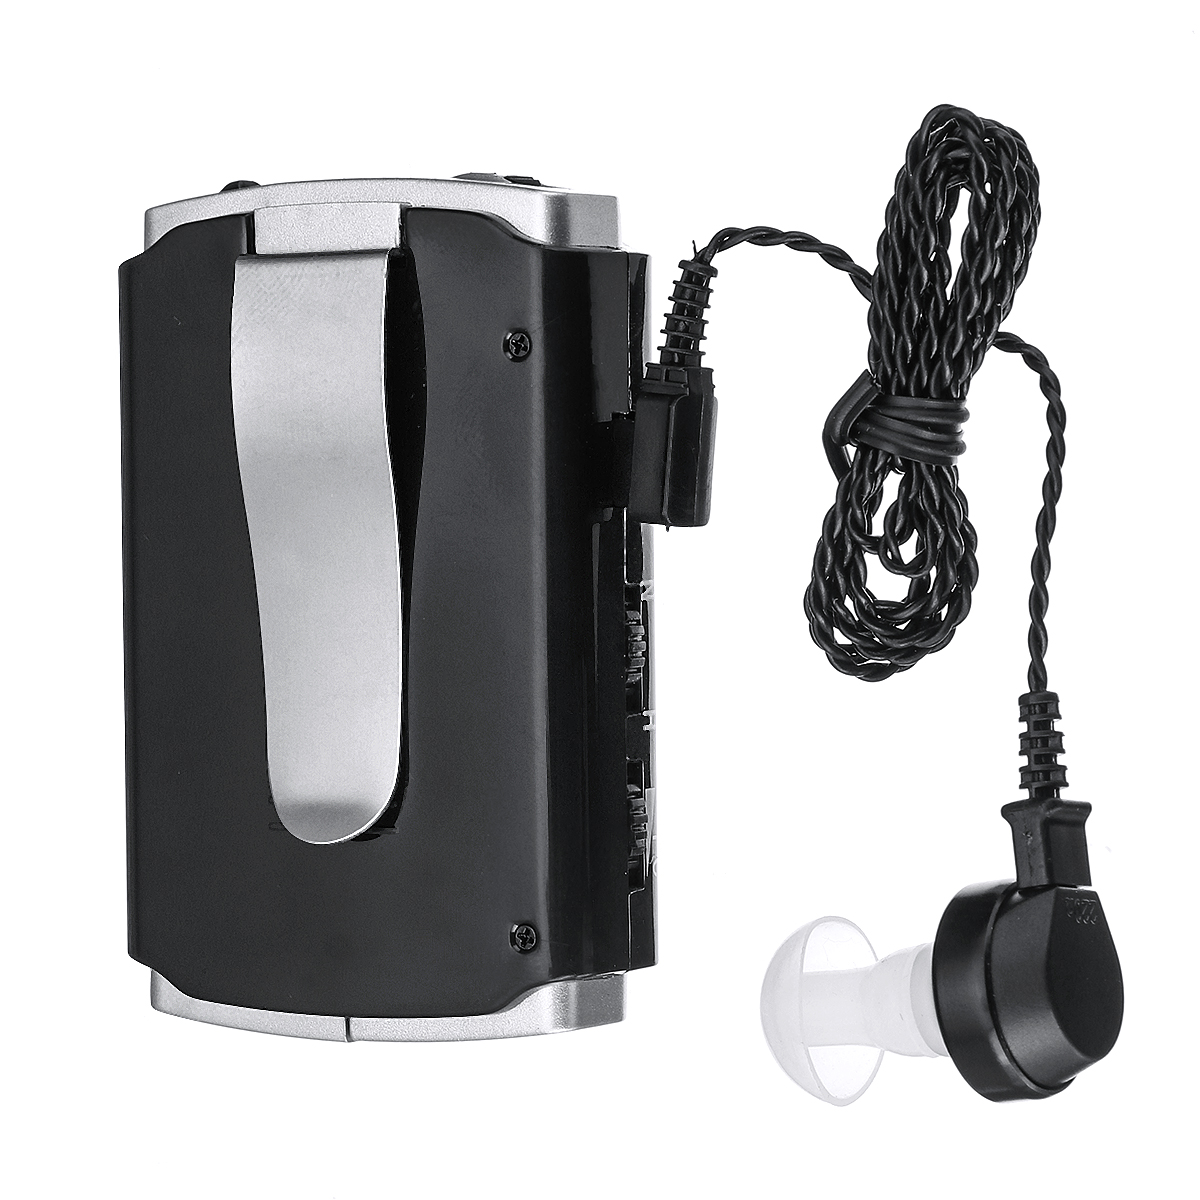 Personal Sound Amplifier Voice Enhancer Device Personal Audio Amplifier Pocket Hearing Devices Hearing Assistance